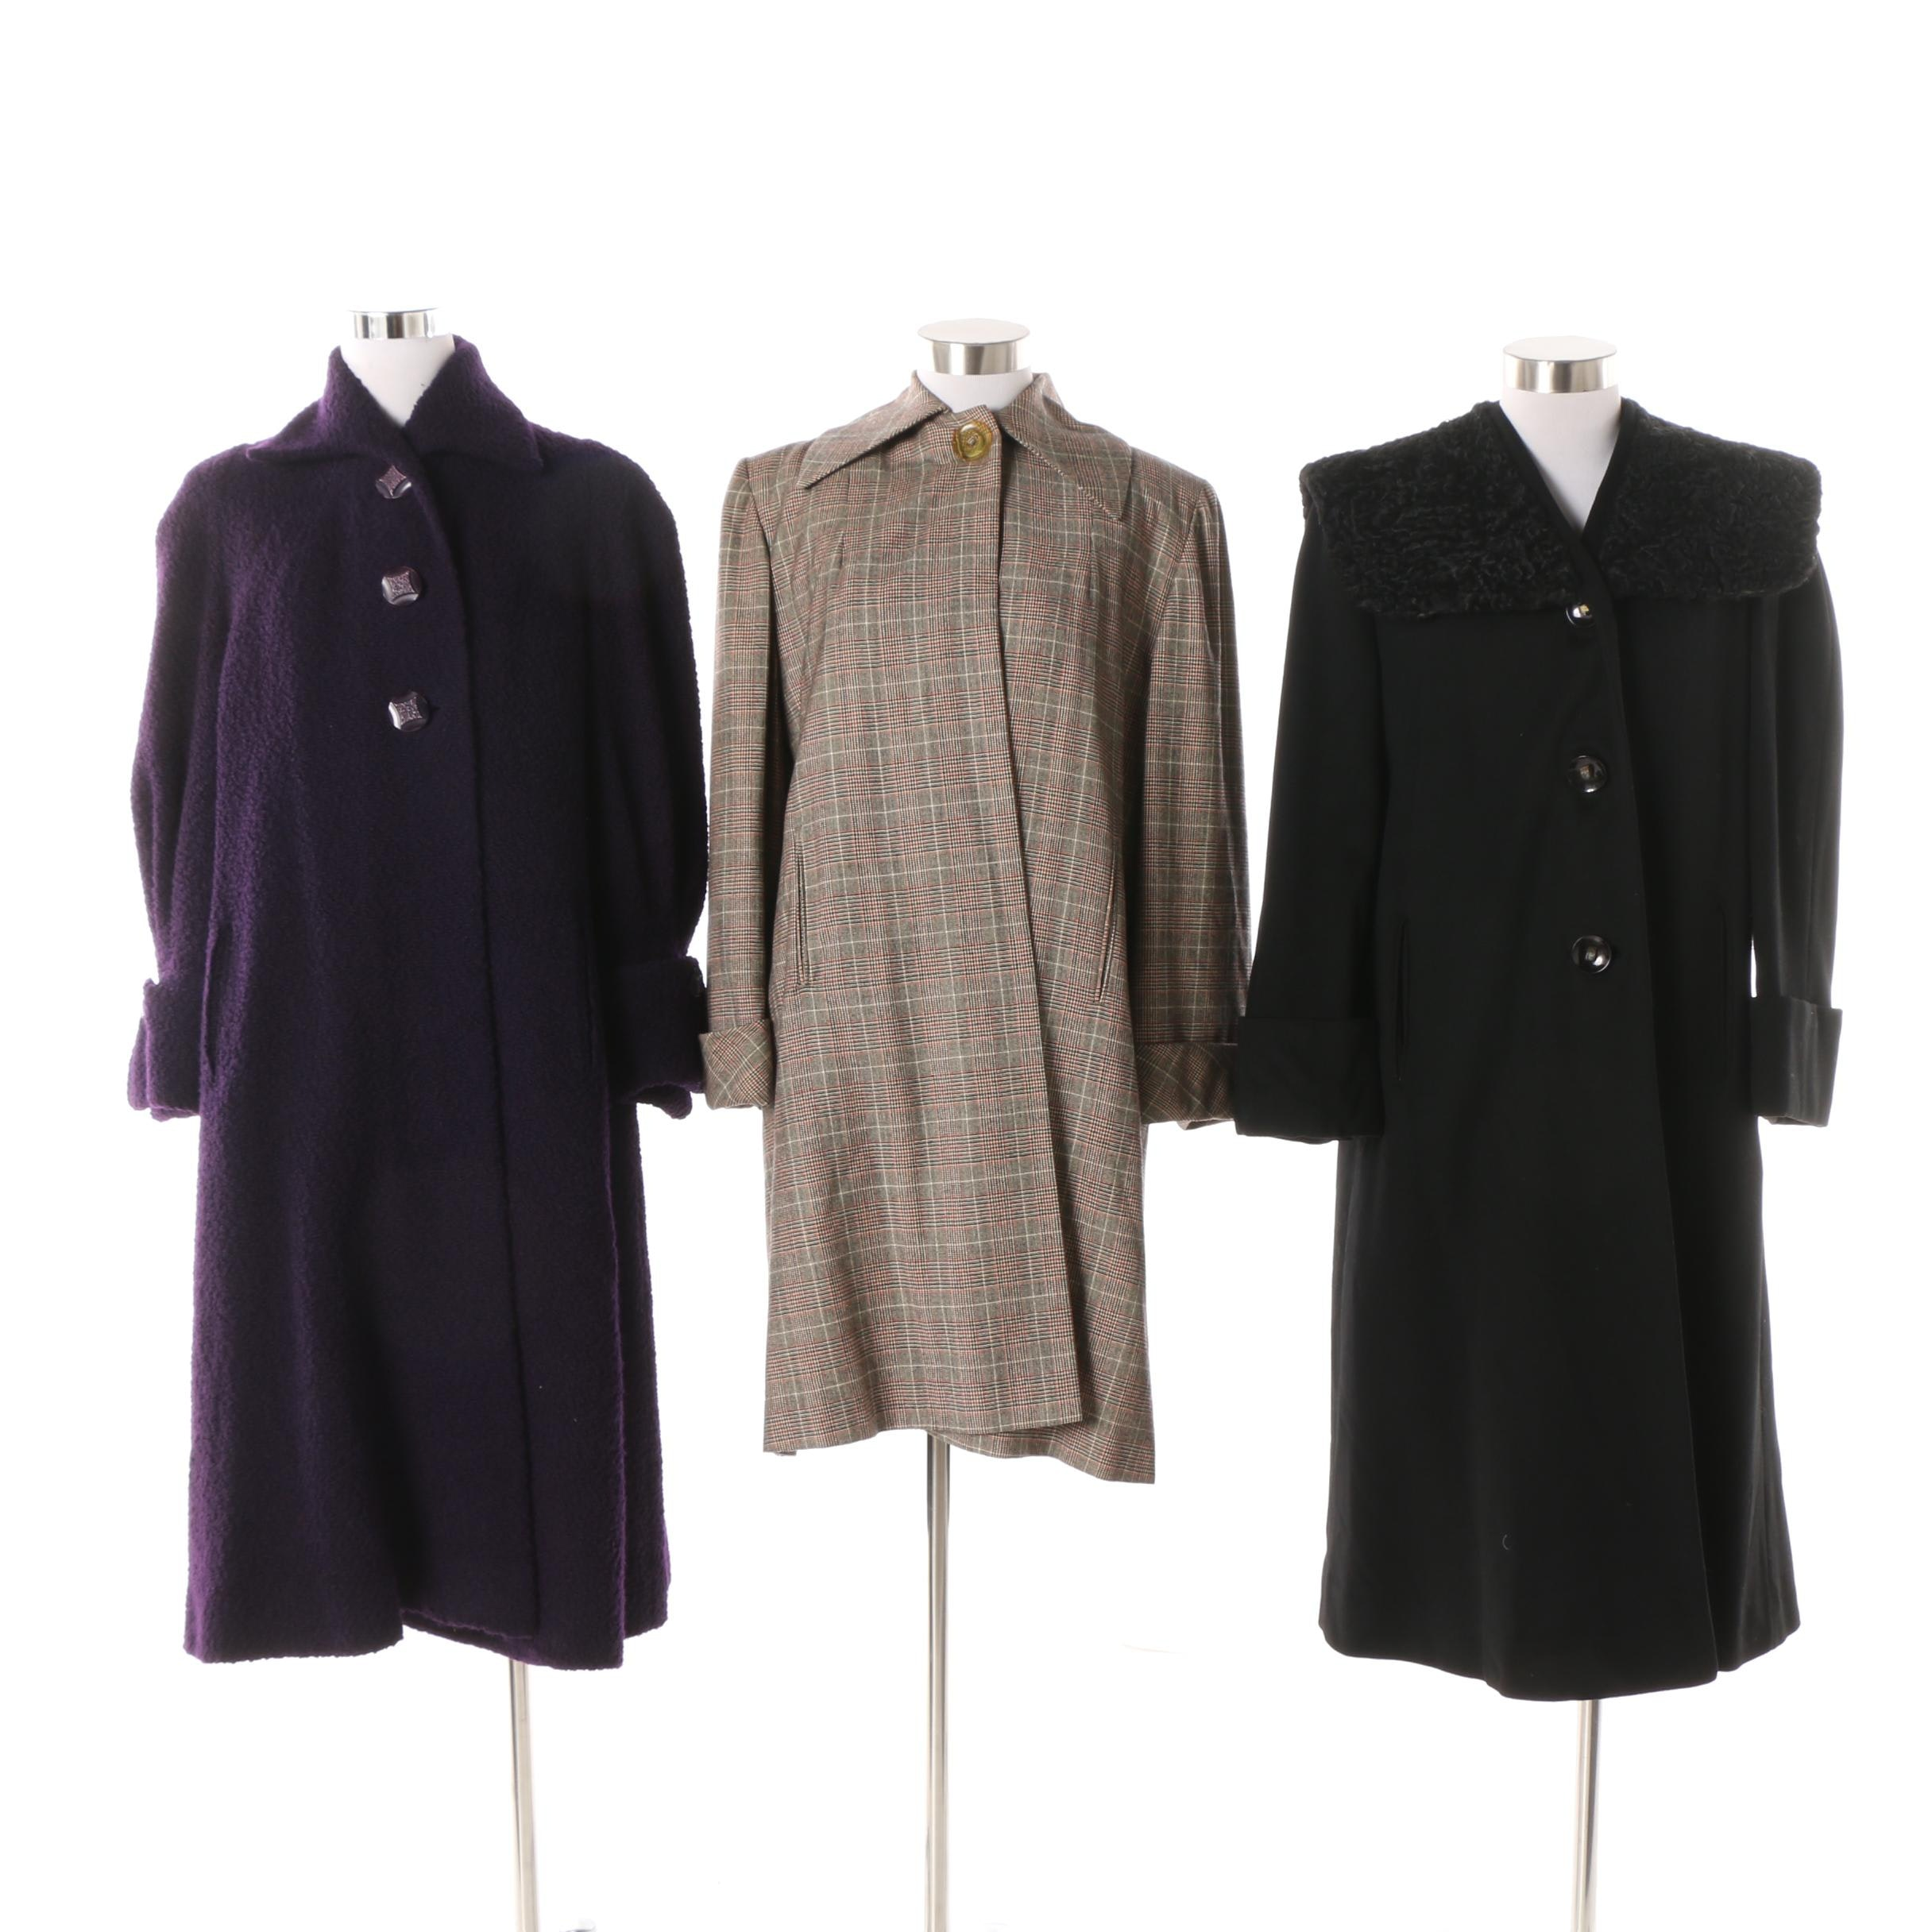 Women's Vintage Wool Coats including Fredleys and Forstmann